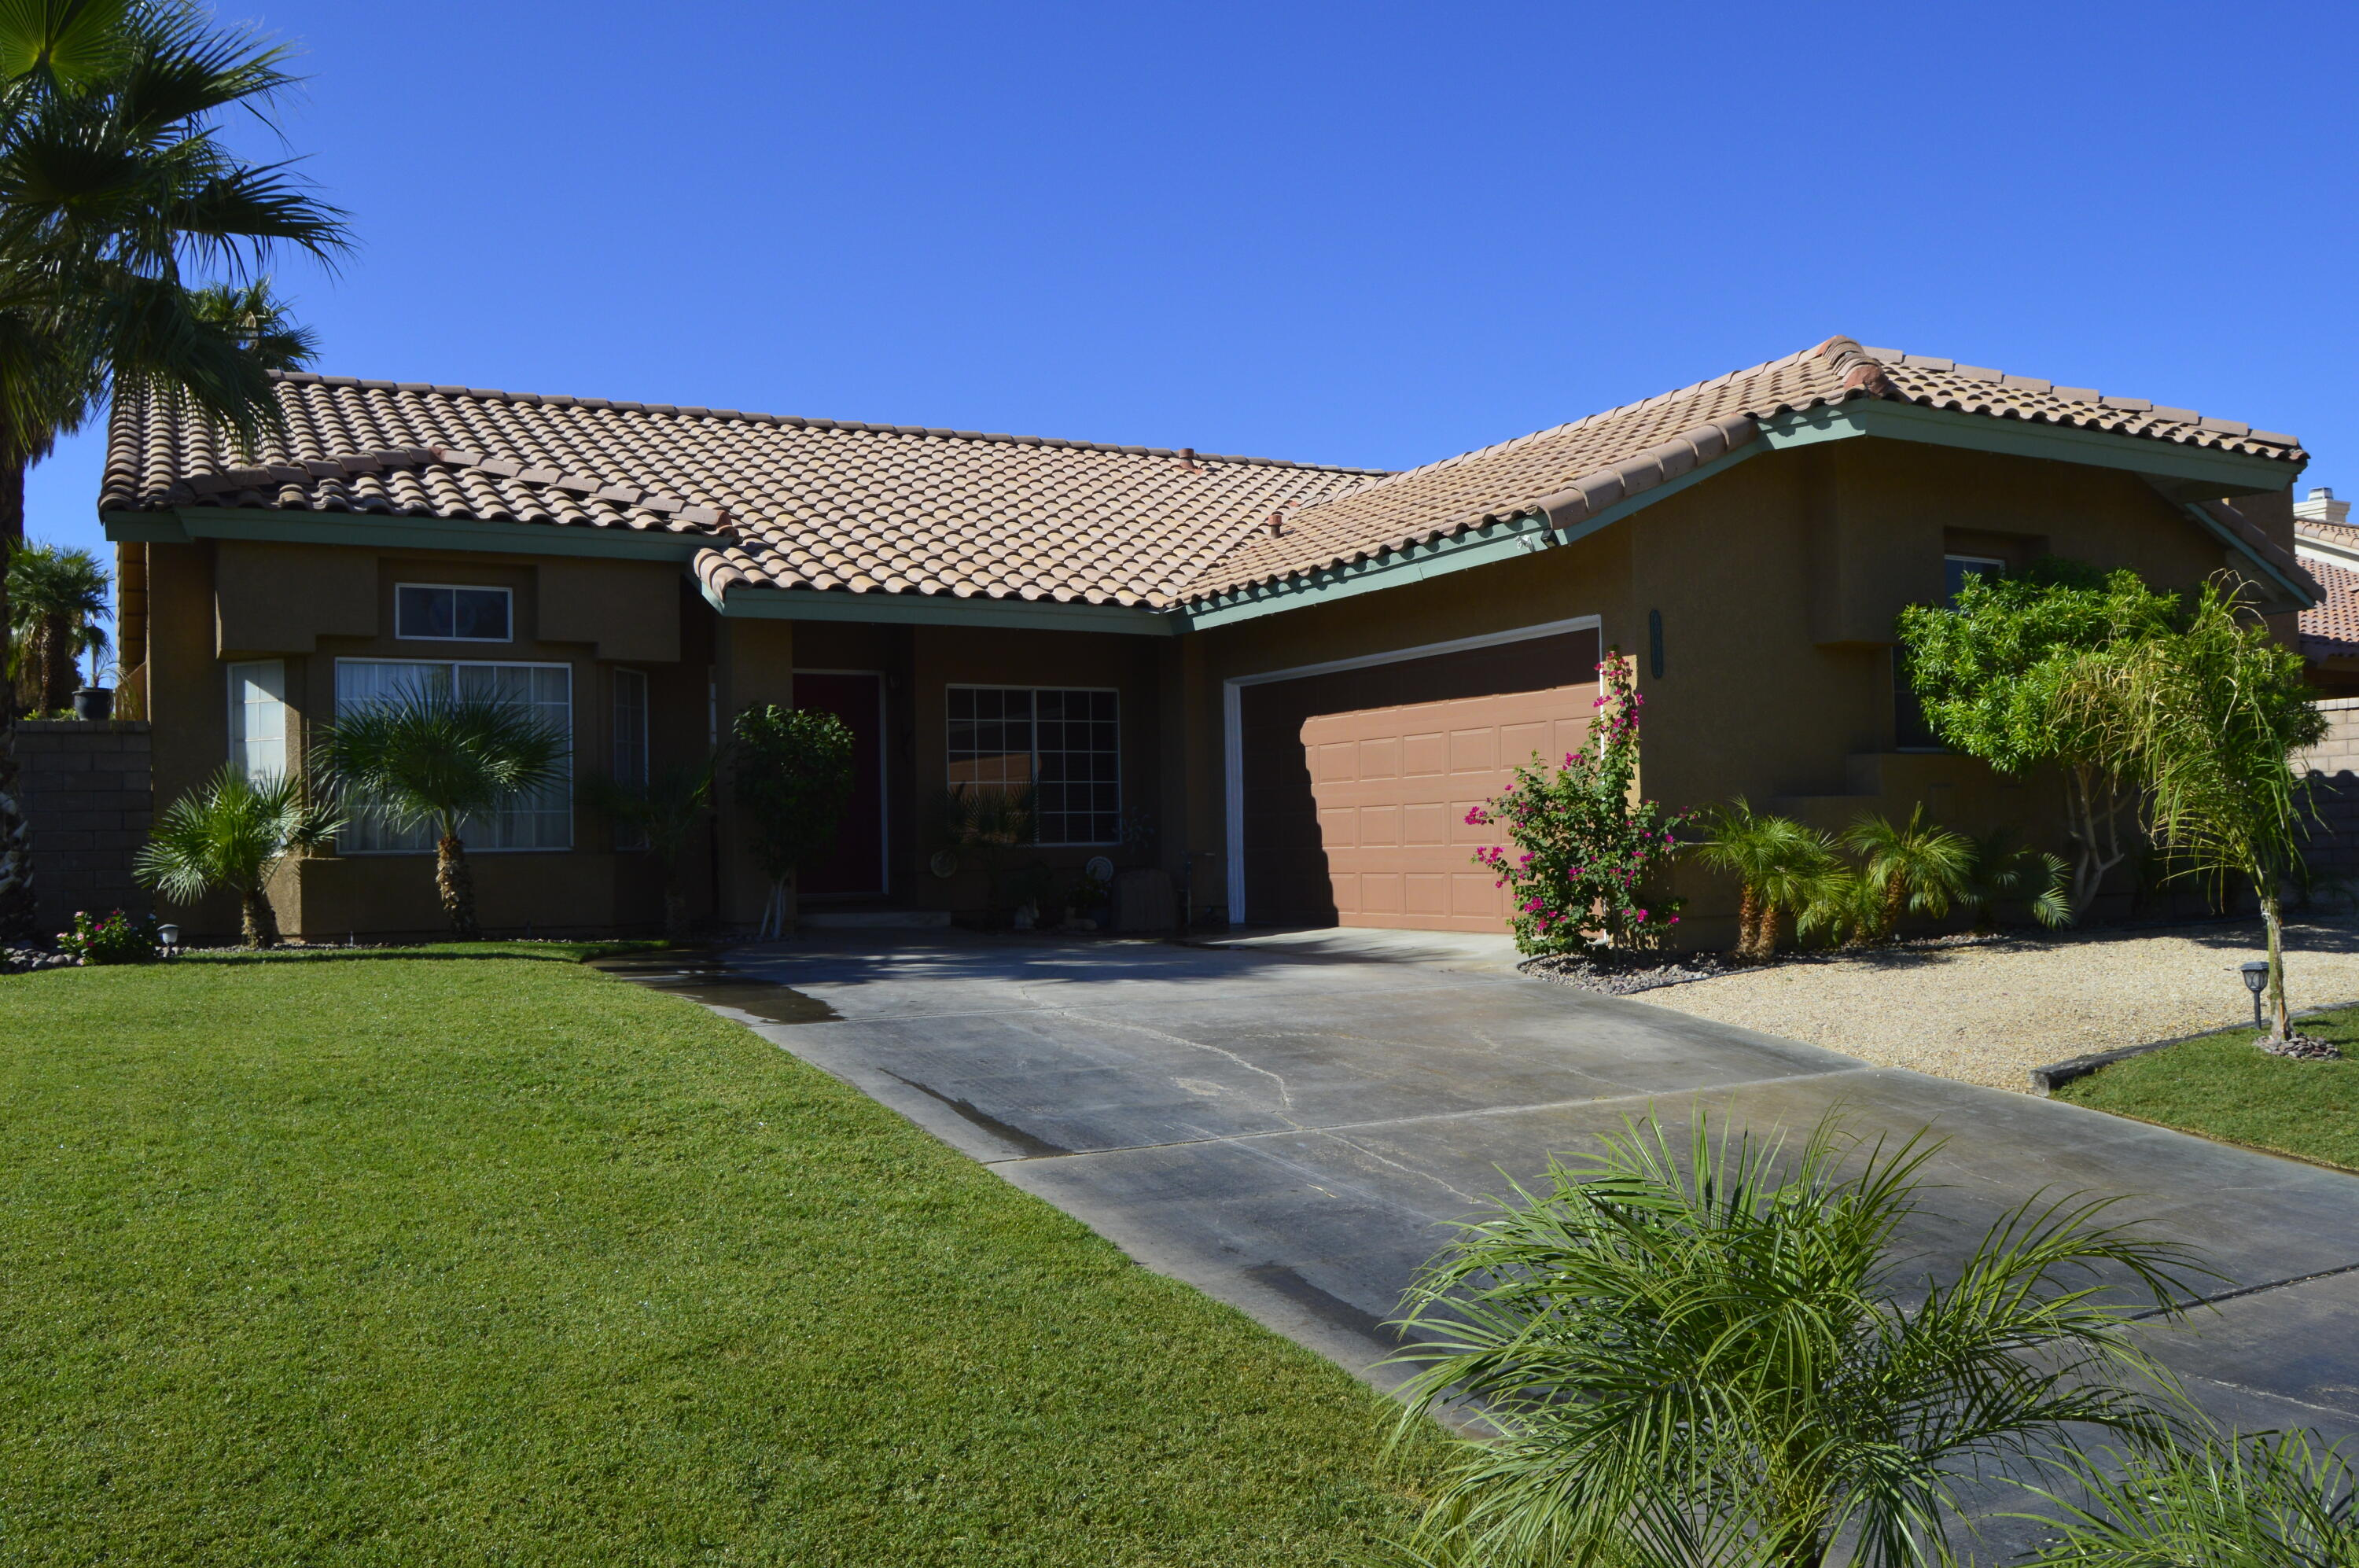 Photo of 69931 Willow Lane, Cathedral City, CA 92234